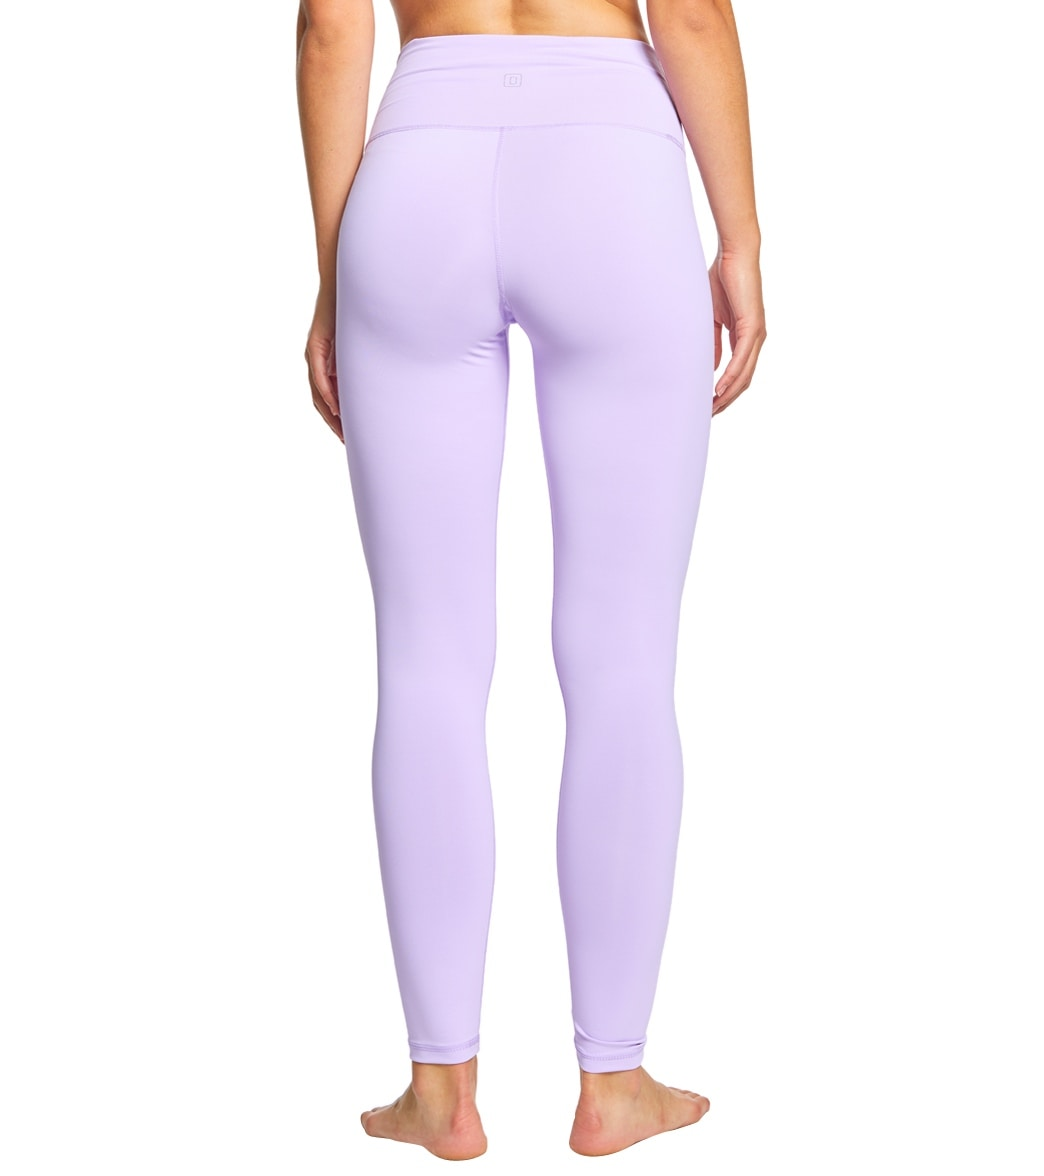 0ce23940a6 DYI Take Control High Waisted Yoga Leggings at YogaOutlet.com - Free ...